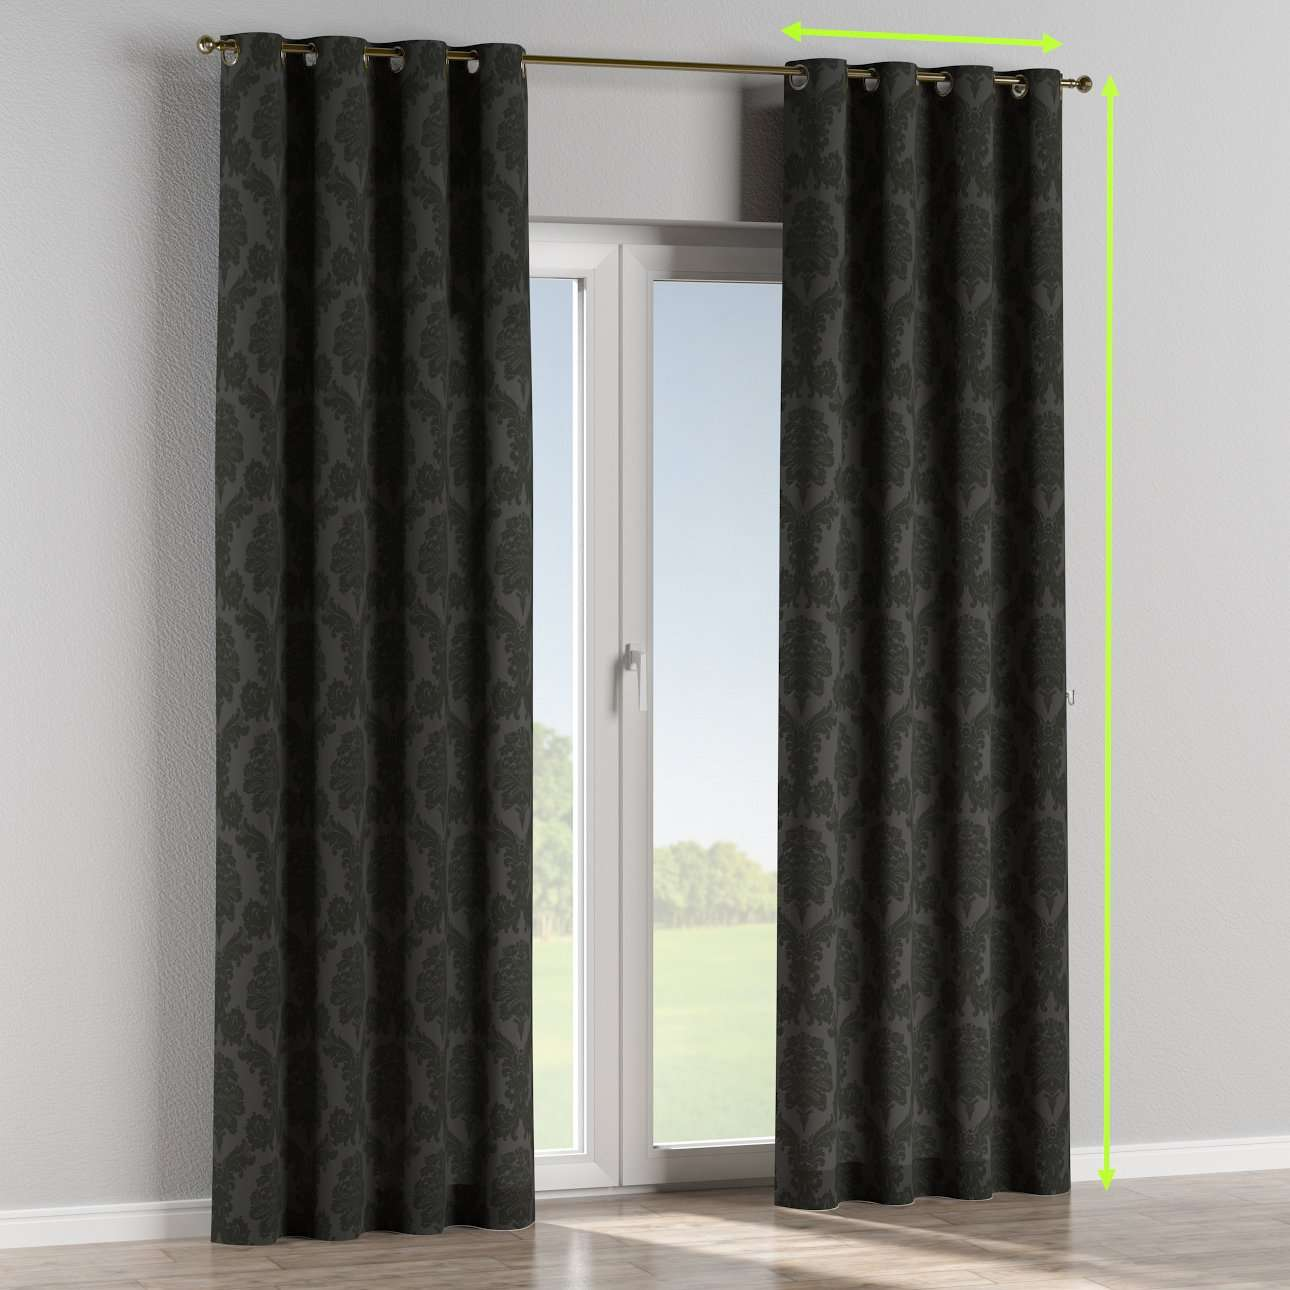 Eyelet curtain in collection Damasco, fabric: 613-32